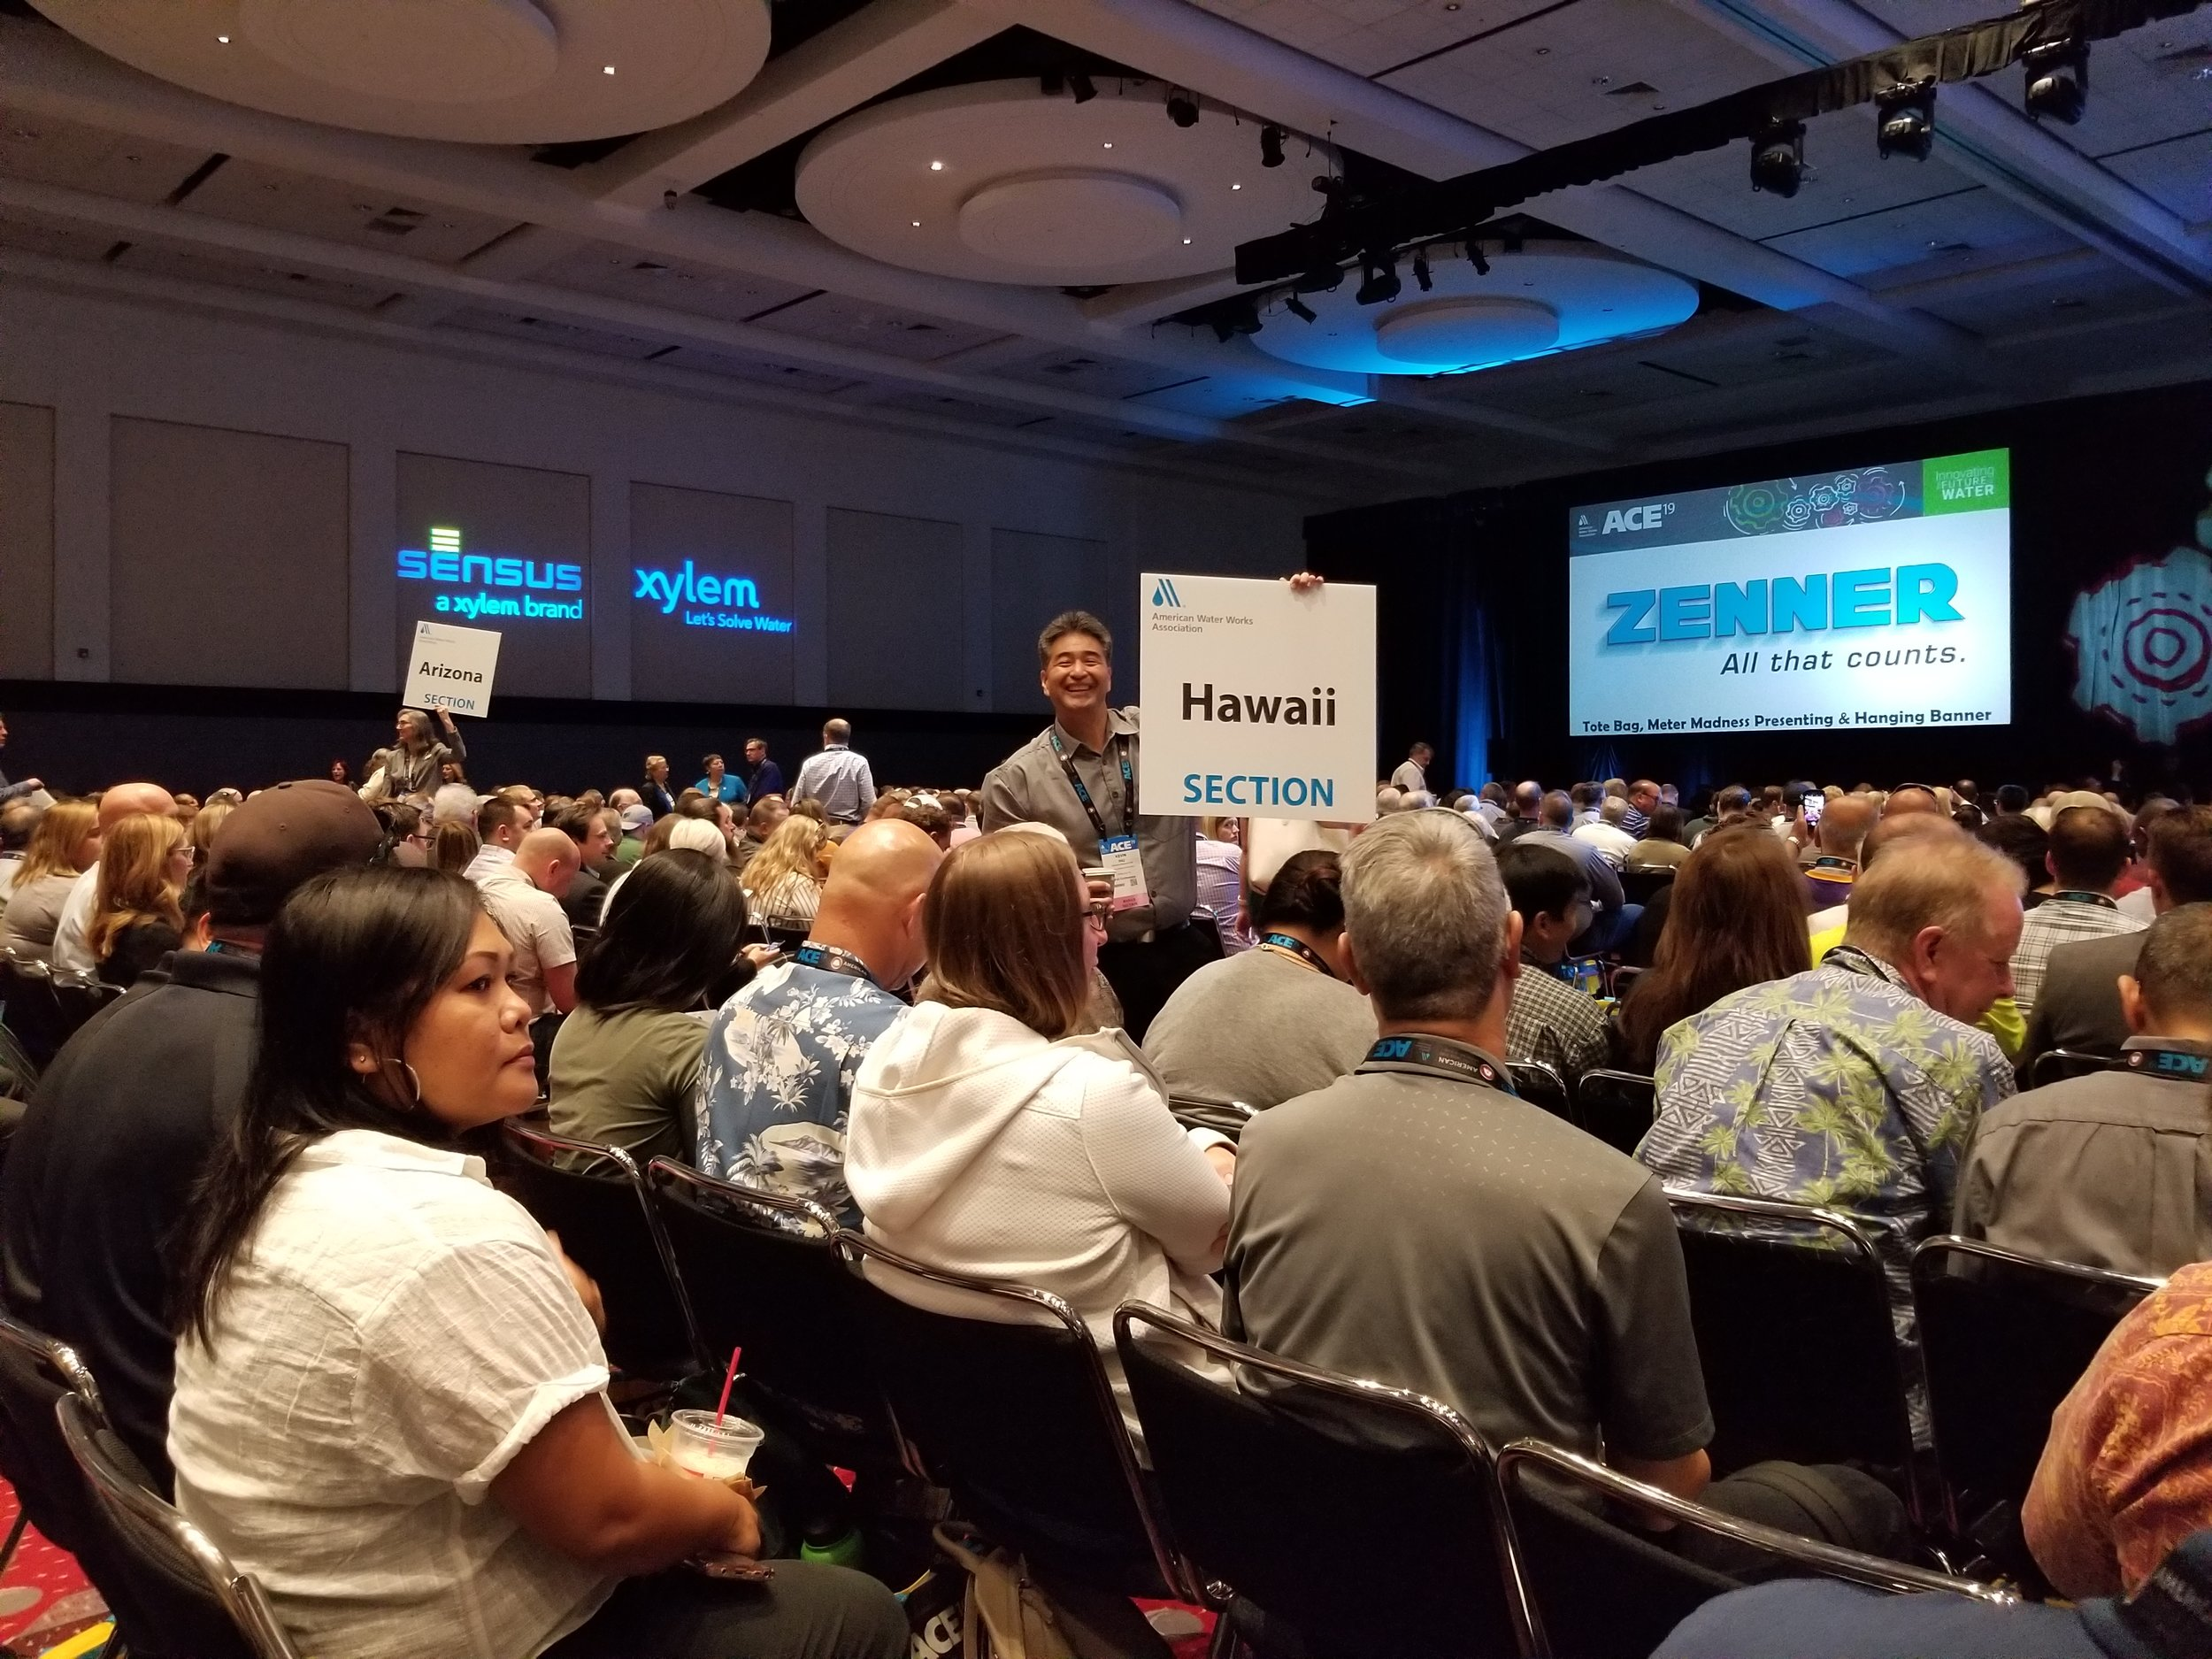 Hawaii Section Chair Kevin Ihu holds the Hawaii Section sign for the ACE19 Opening General Session on 6/10/2019.